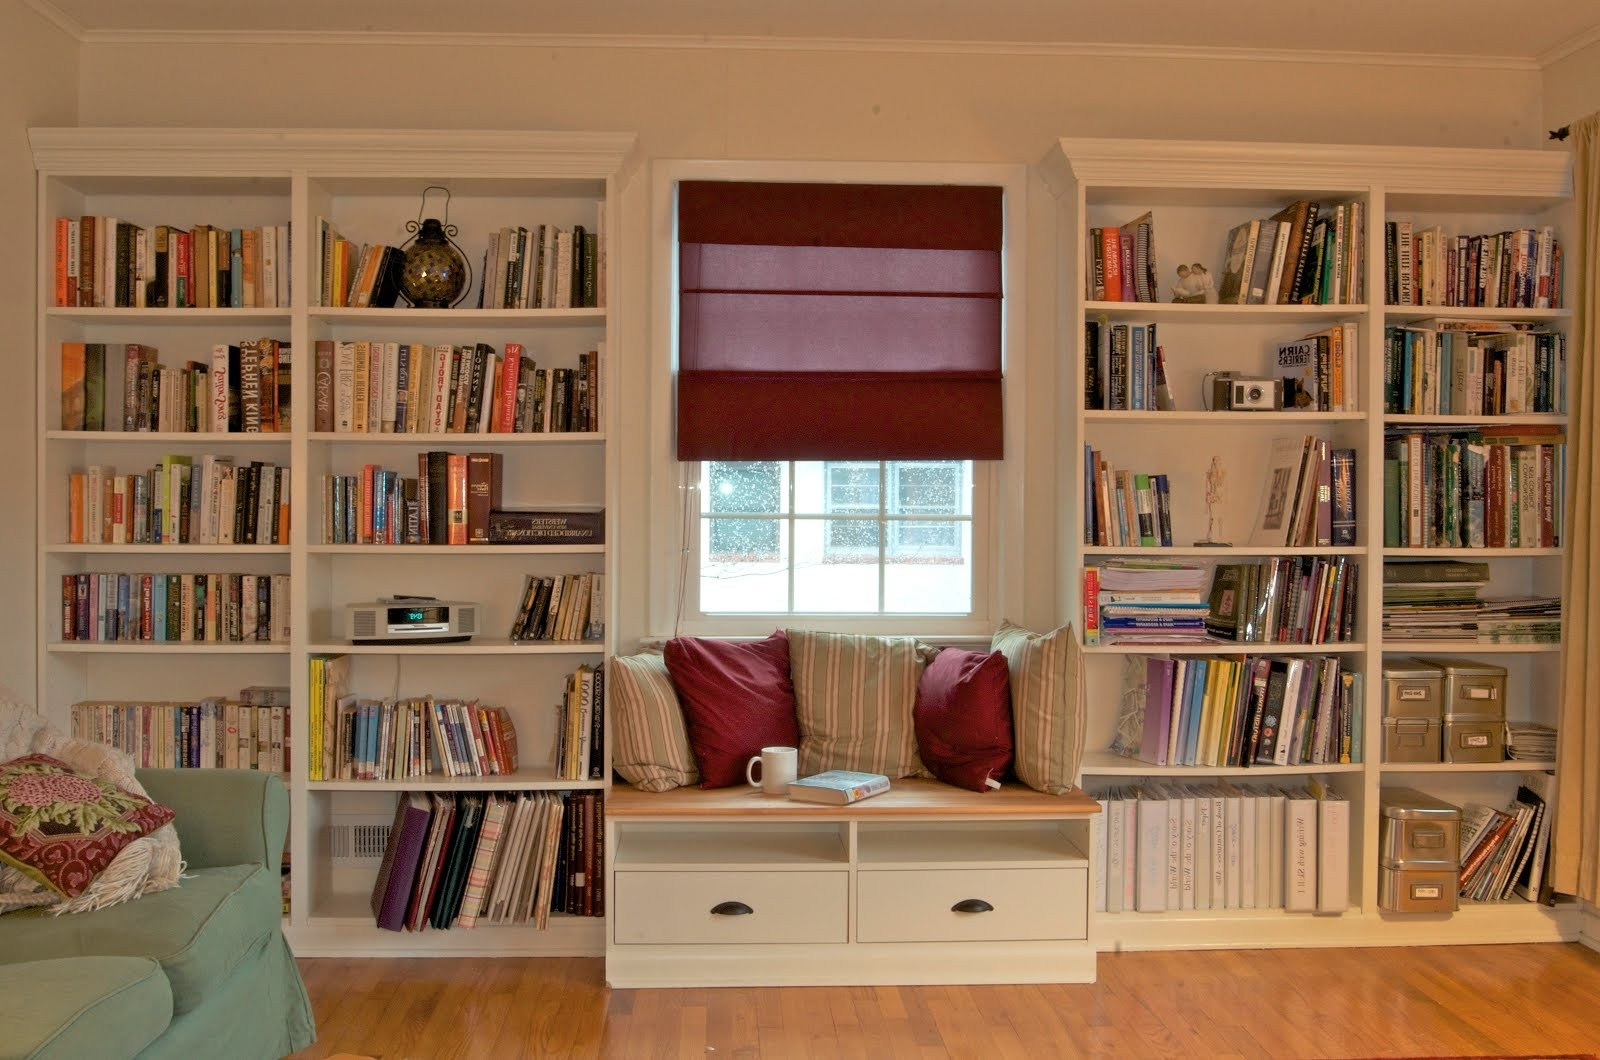 Sofa Bookcases Throughout Latest Built In Bookshelves With Window Seat For Under $350 – Ikea Hackers (View 15 of 15)